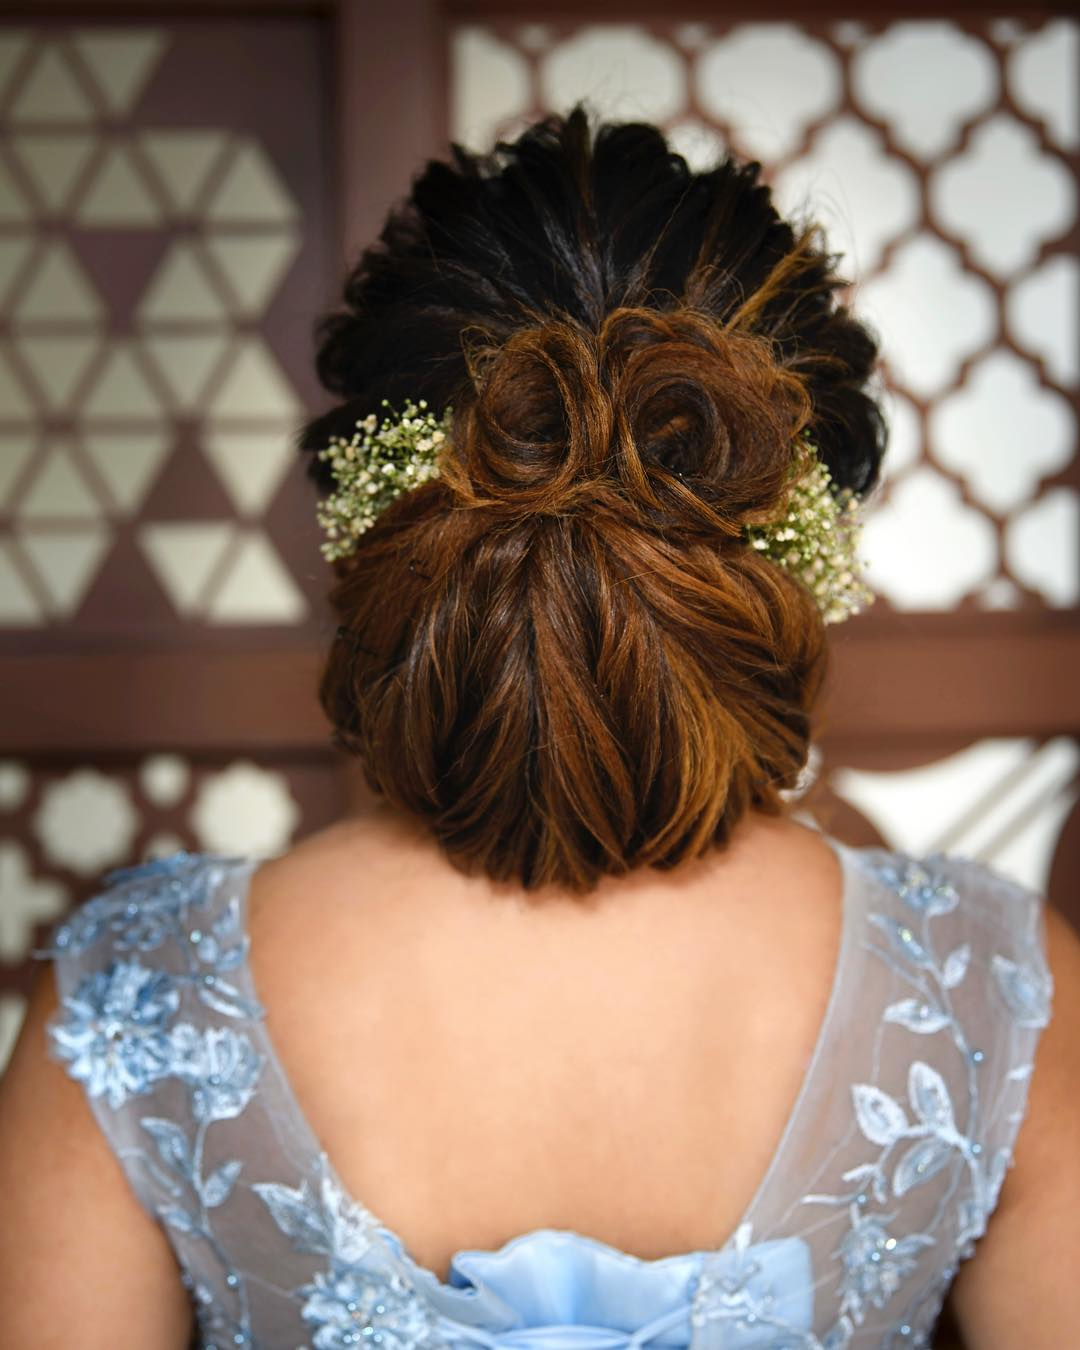 Rolled up bun: Trending Bun Hairstyles for your Wedding Reception